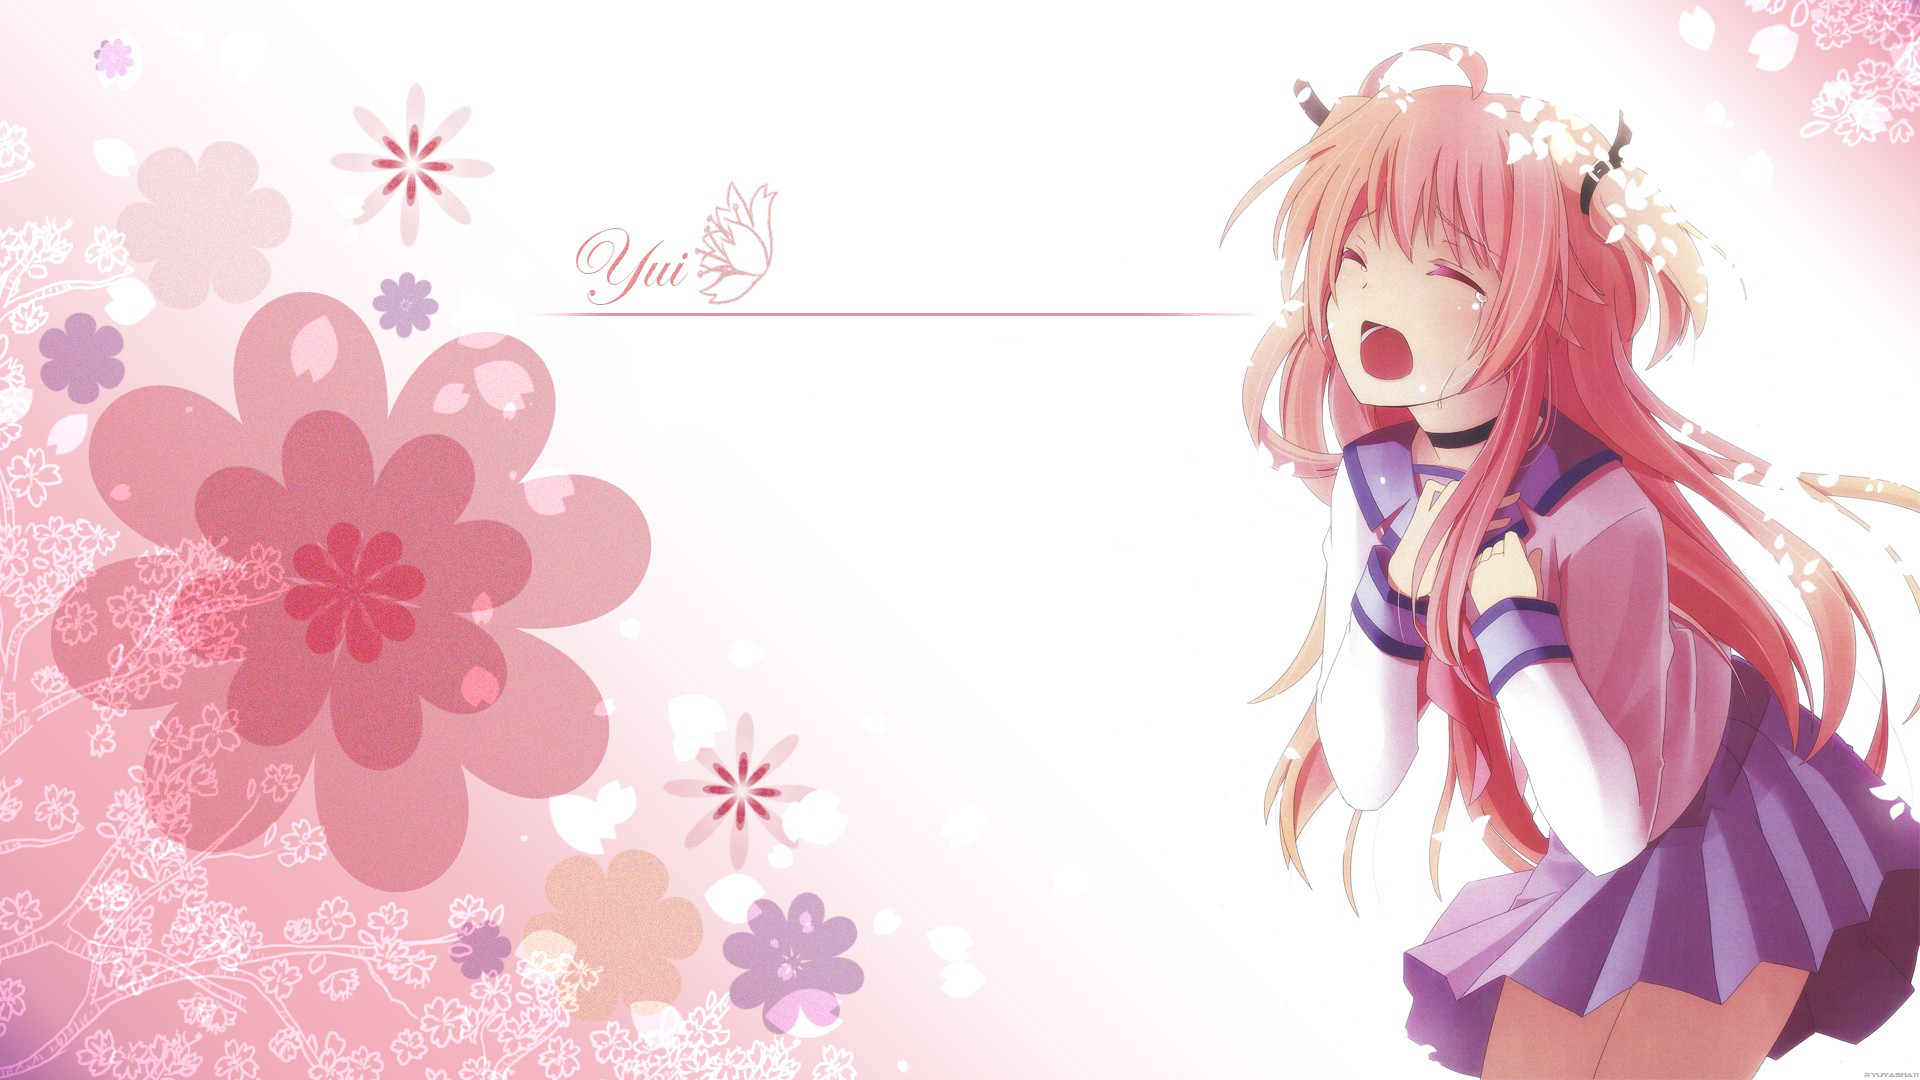 Sad Girl Full Hd Wallpaper Download Angel Beats Full Hd Wallpaper And Background Image